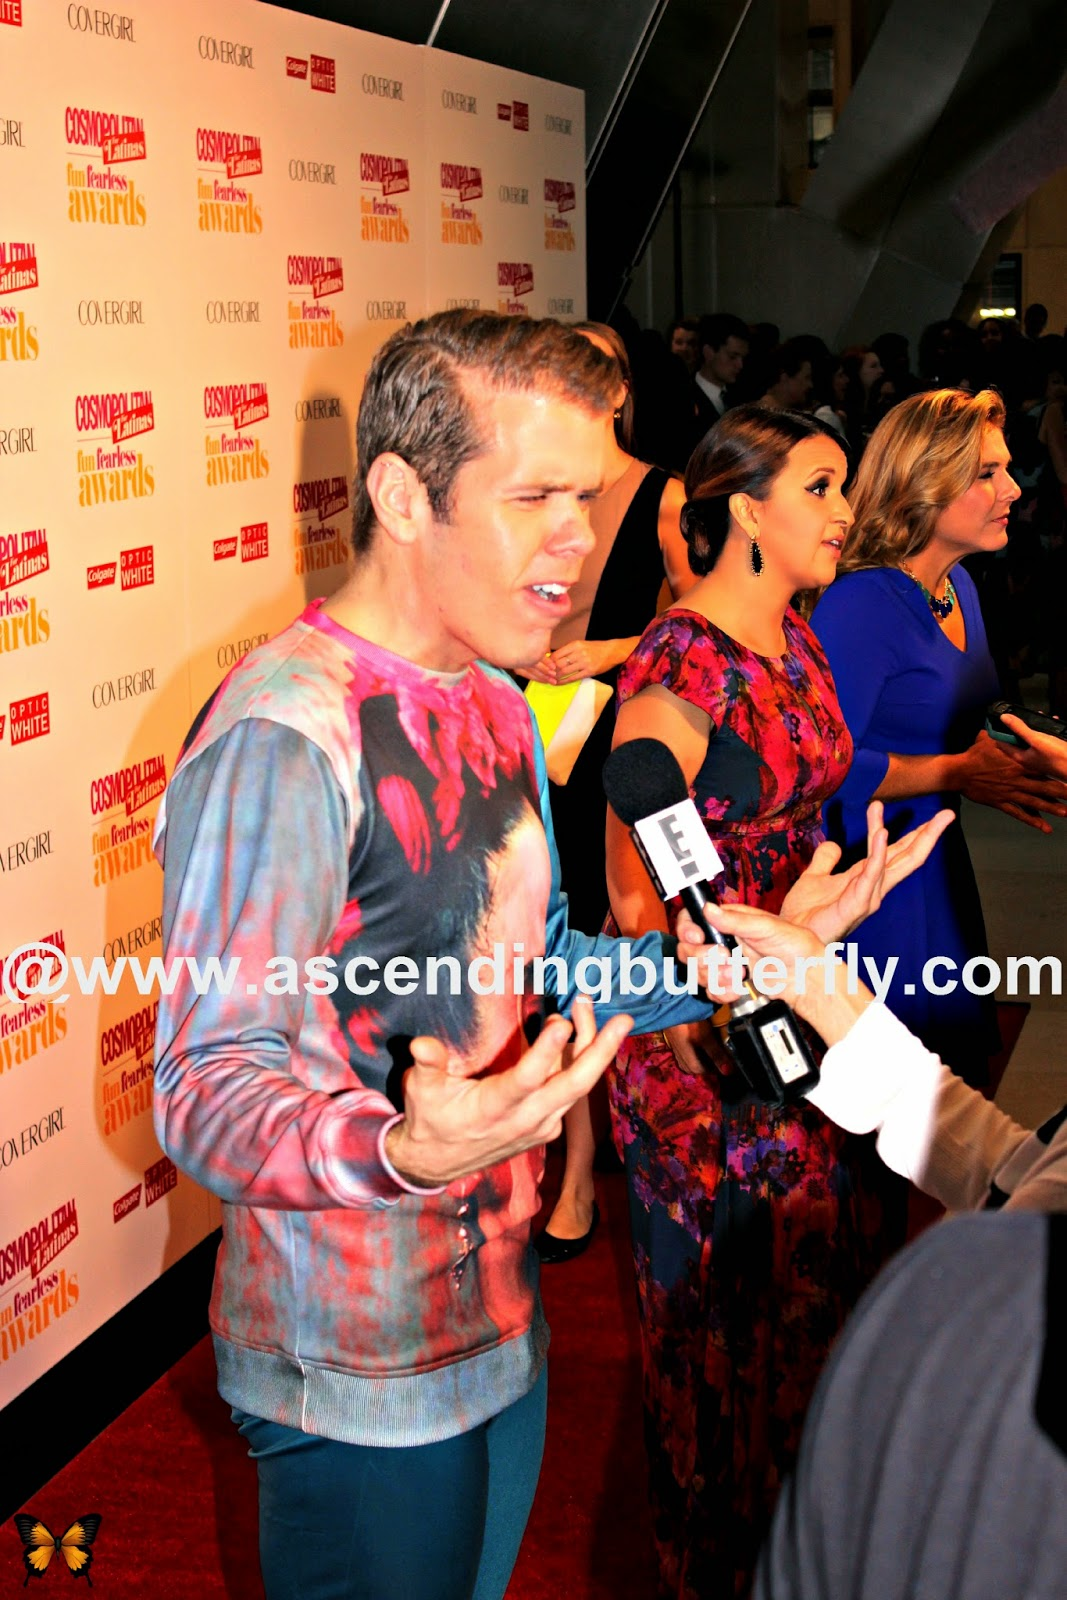 Blogger Perez Hilton gets interviewed on the red carpet at Cosmopolitan for Latinas Fun Fearless Awards 2014 in New York City